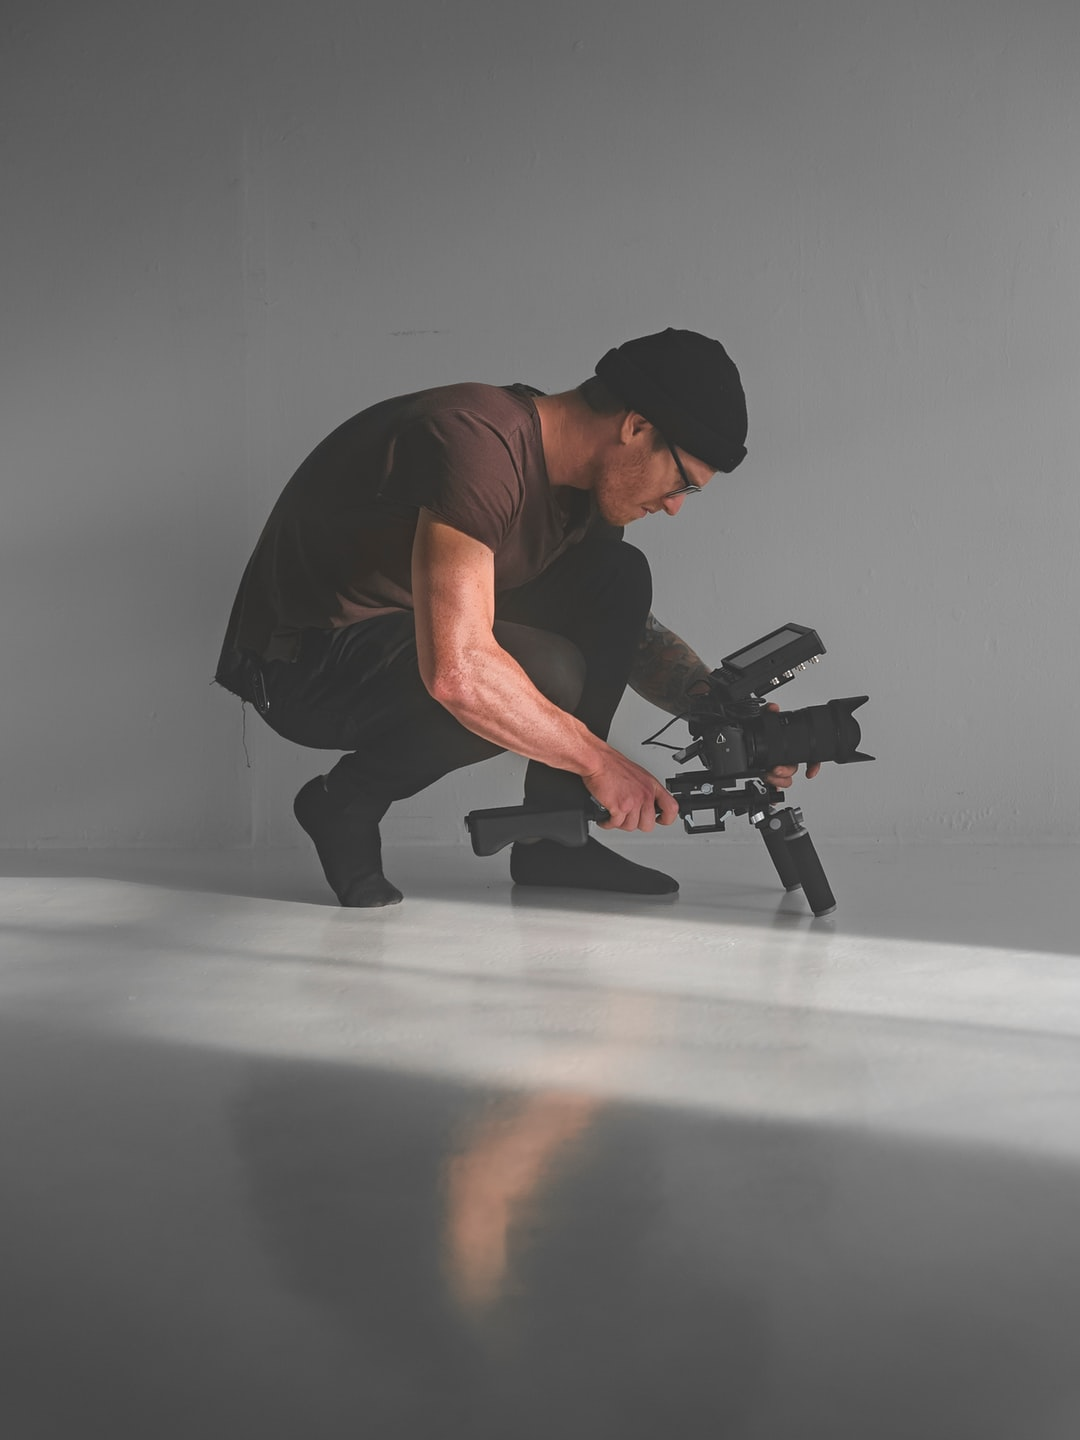 Garin Chadwick filming in a studio Photo by Tyler Chandler